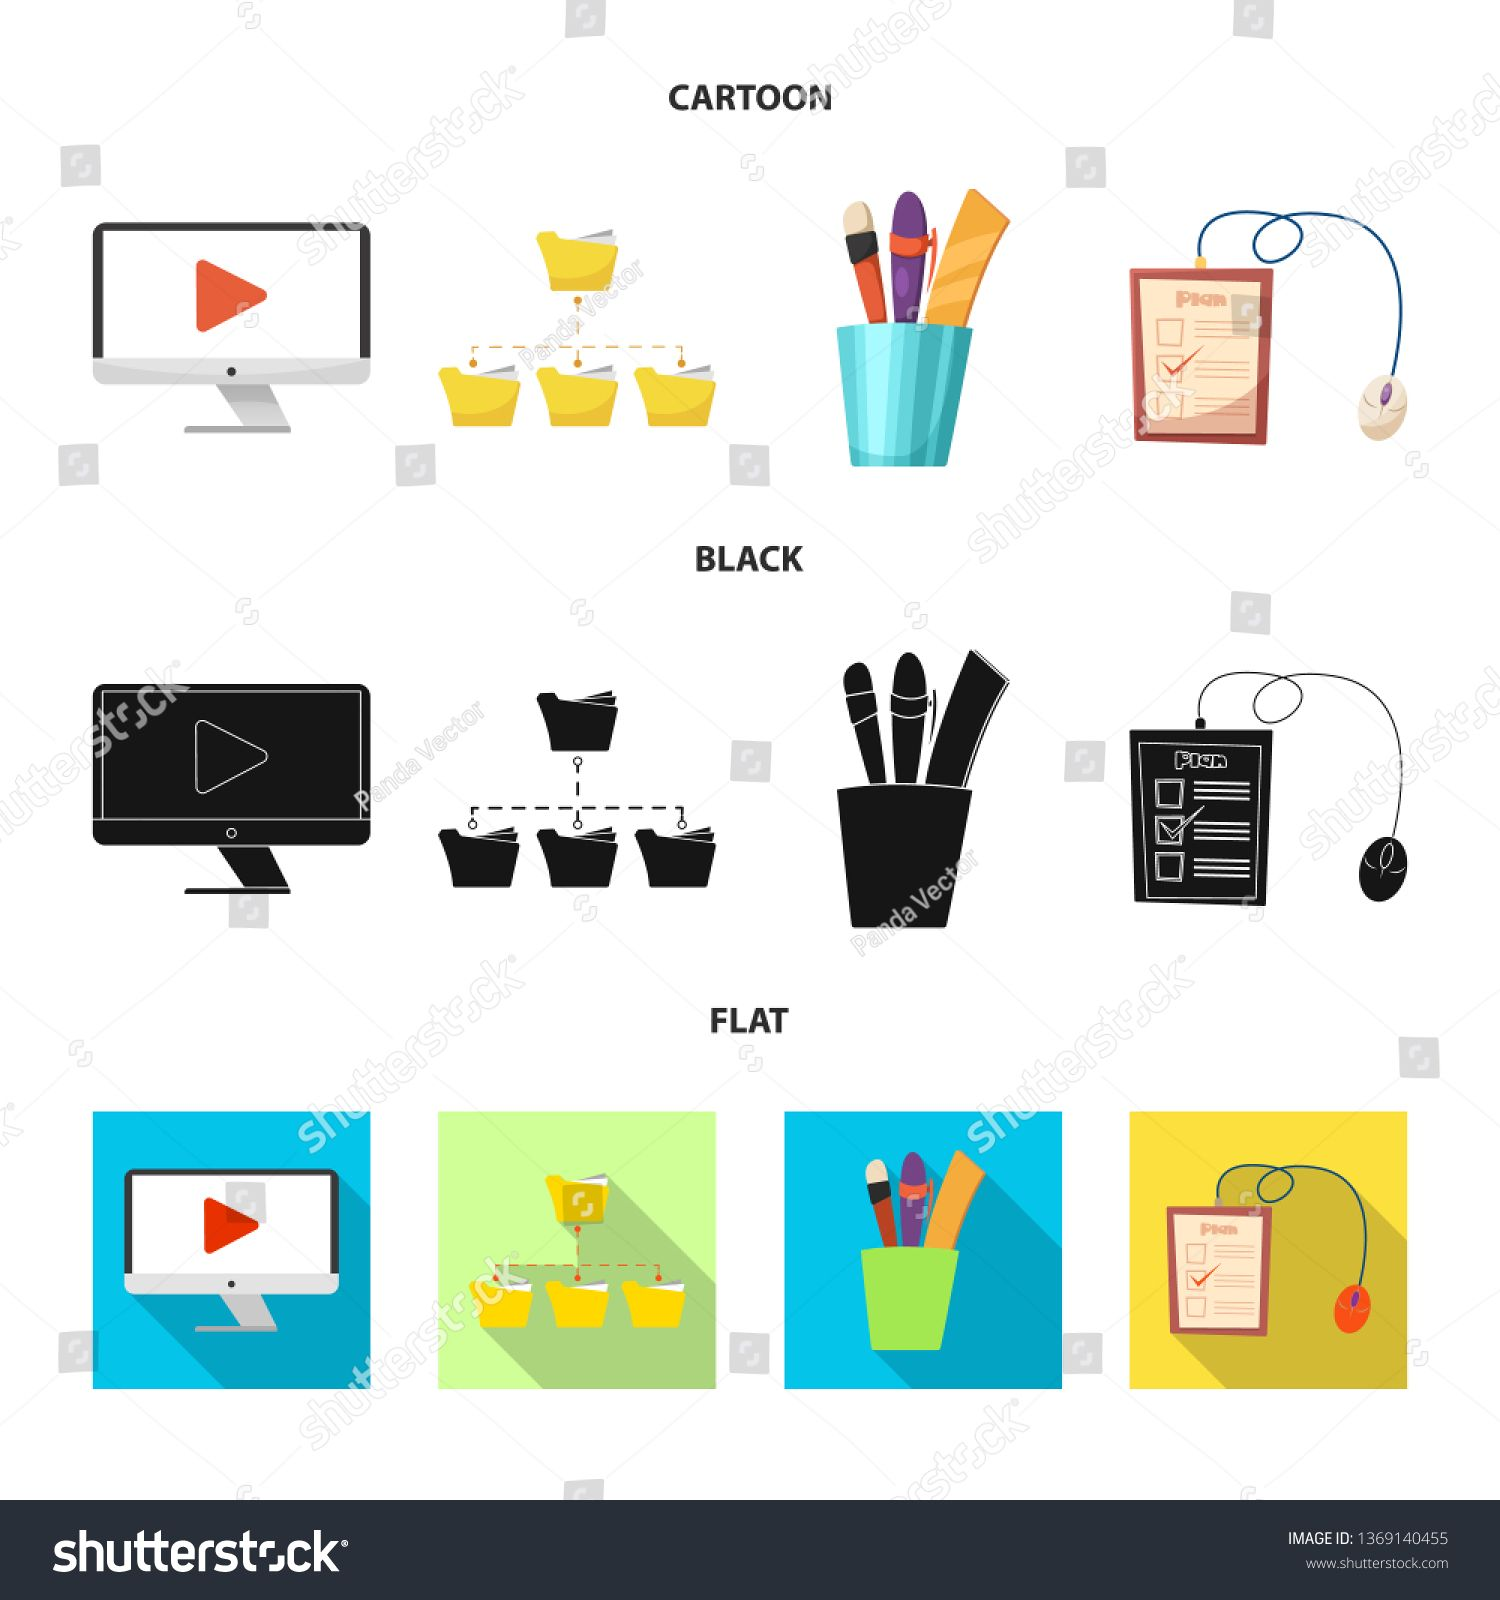 Bitmap Illustration Of Education And Learning Symbol Collection Of Education And School Stock Symbol For Web Ad Photography Business Cards Bitmap Education